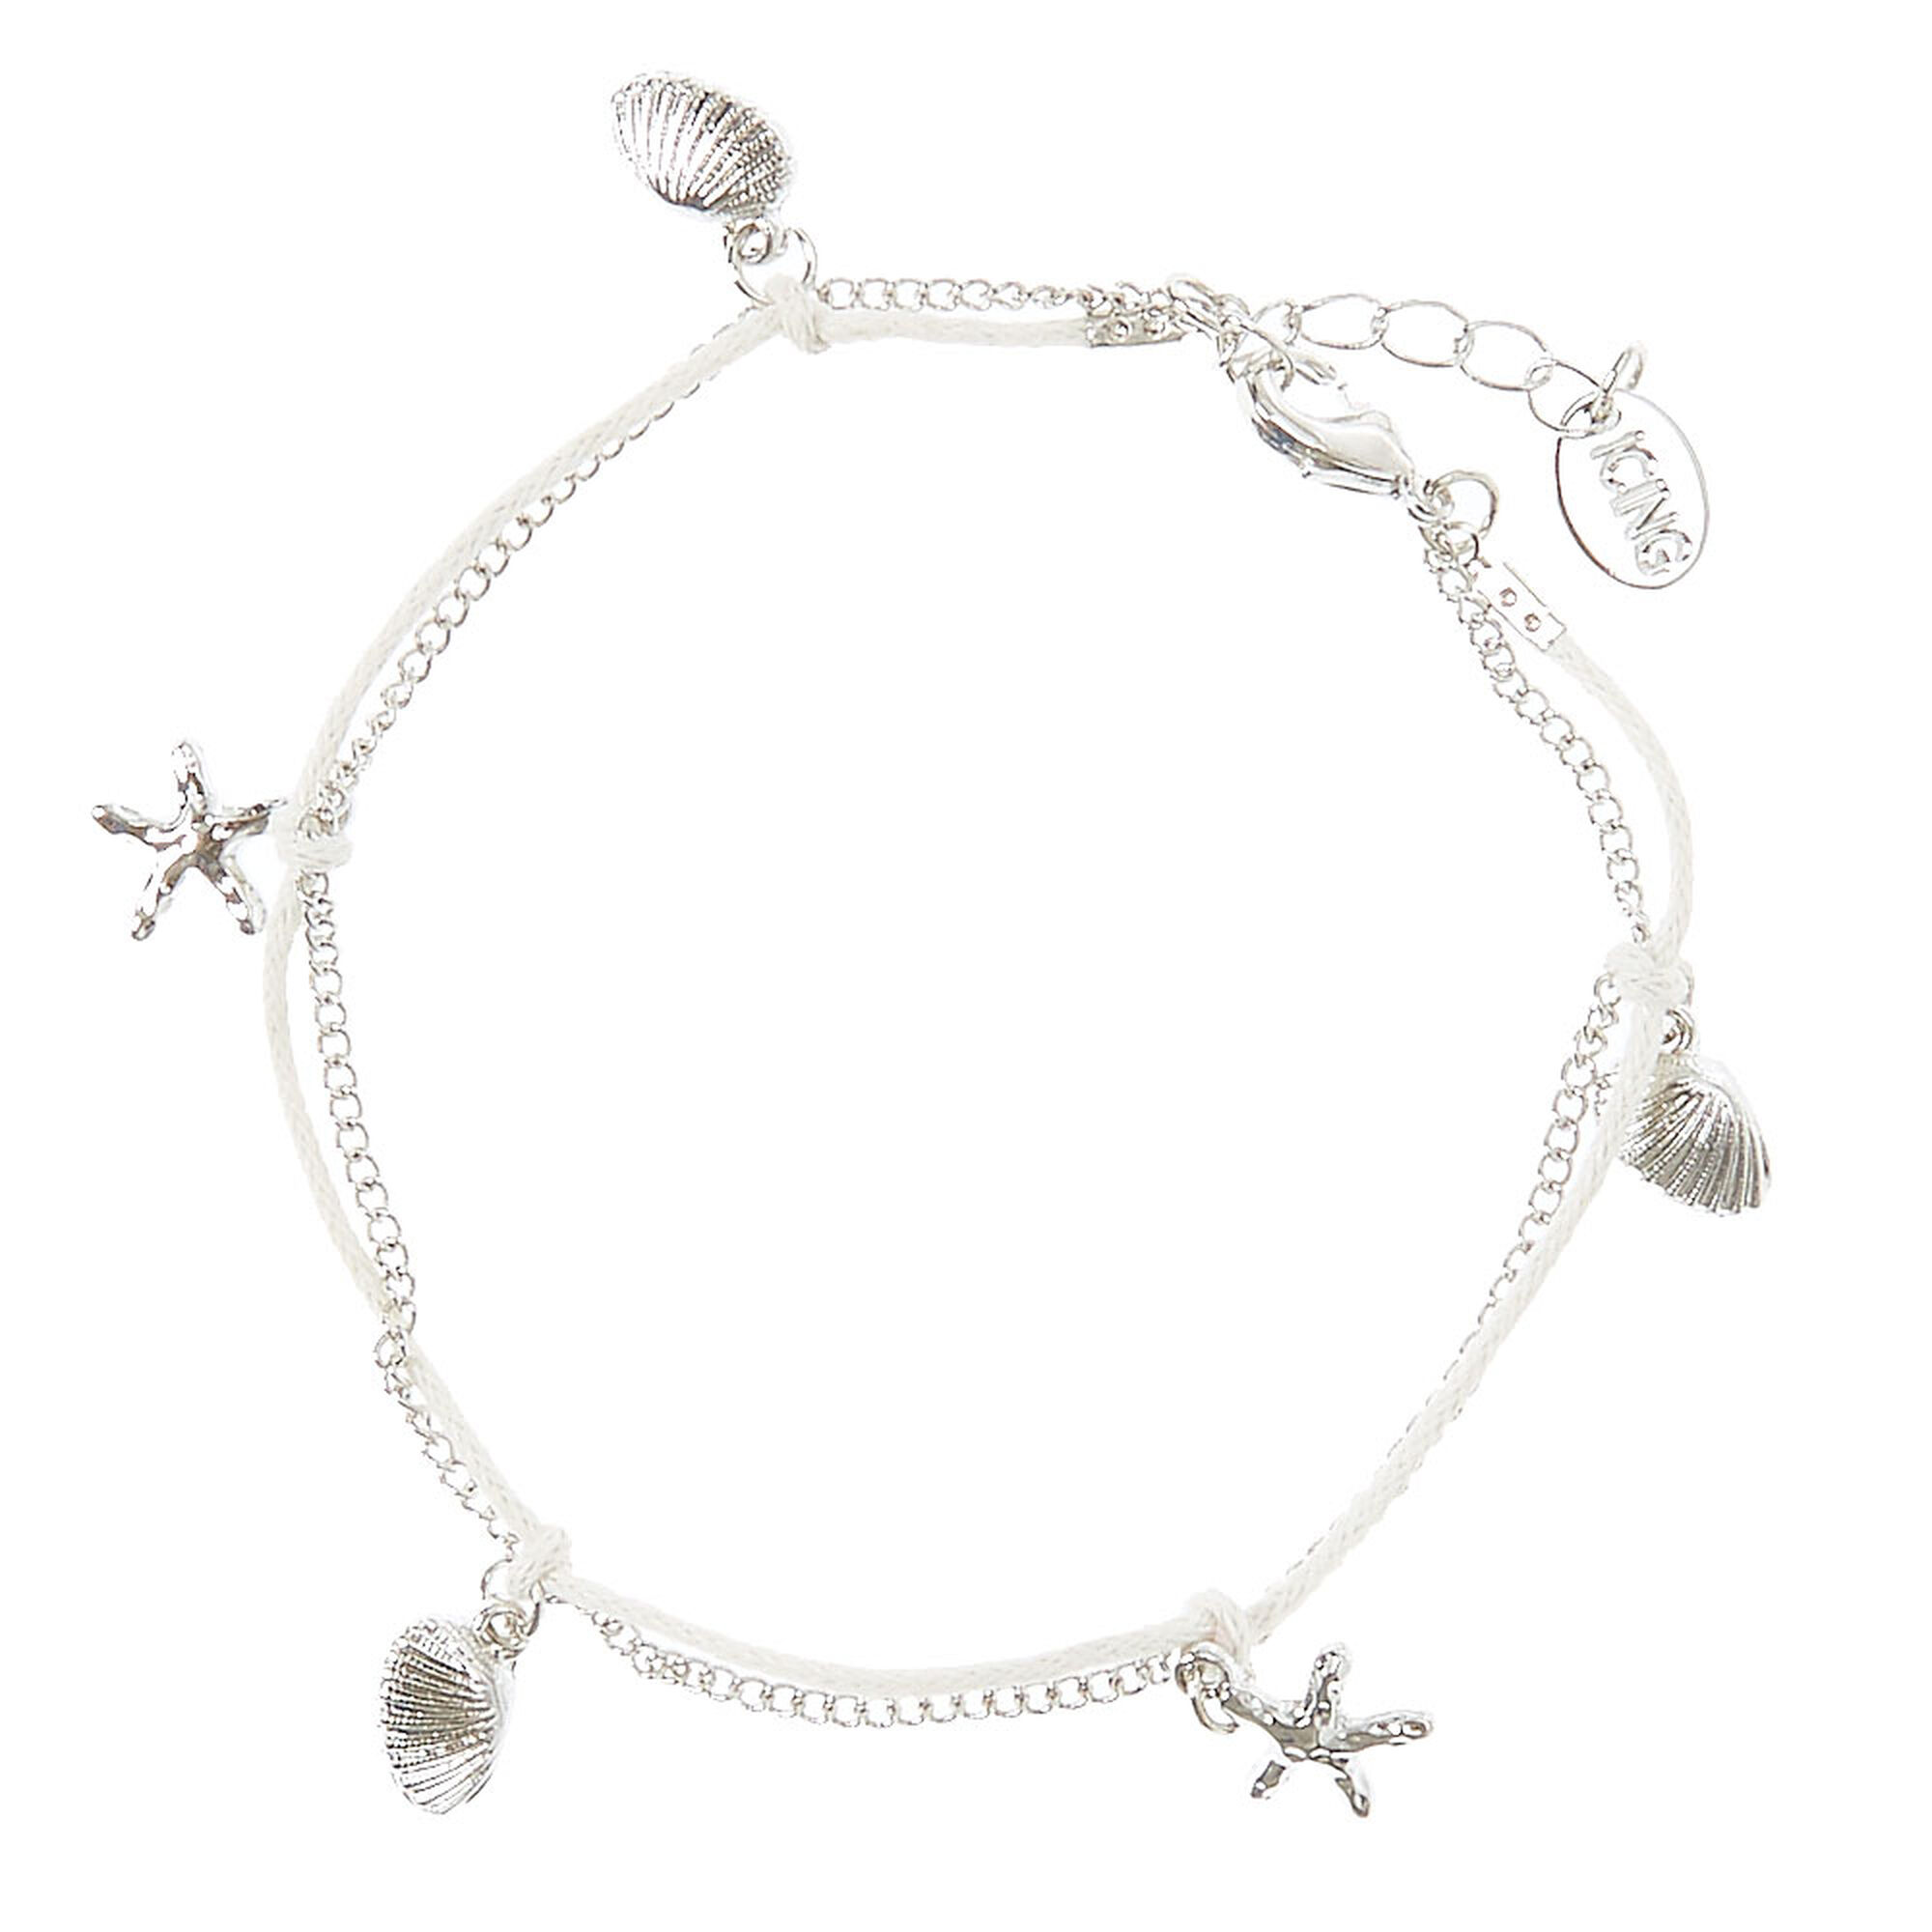 missgrace com insaney bead dp style charm amazon pearl starfish buy and vintage bracelet turquoise anklet tassels coin antique silver link